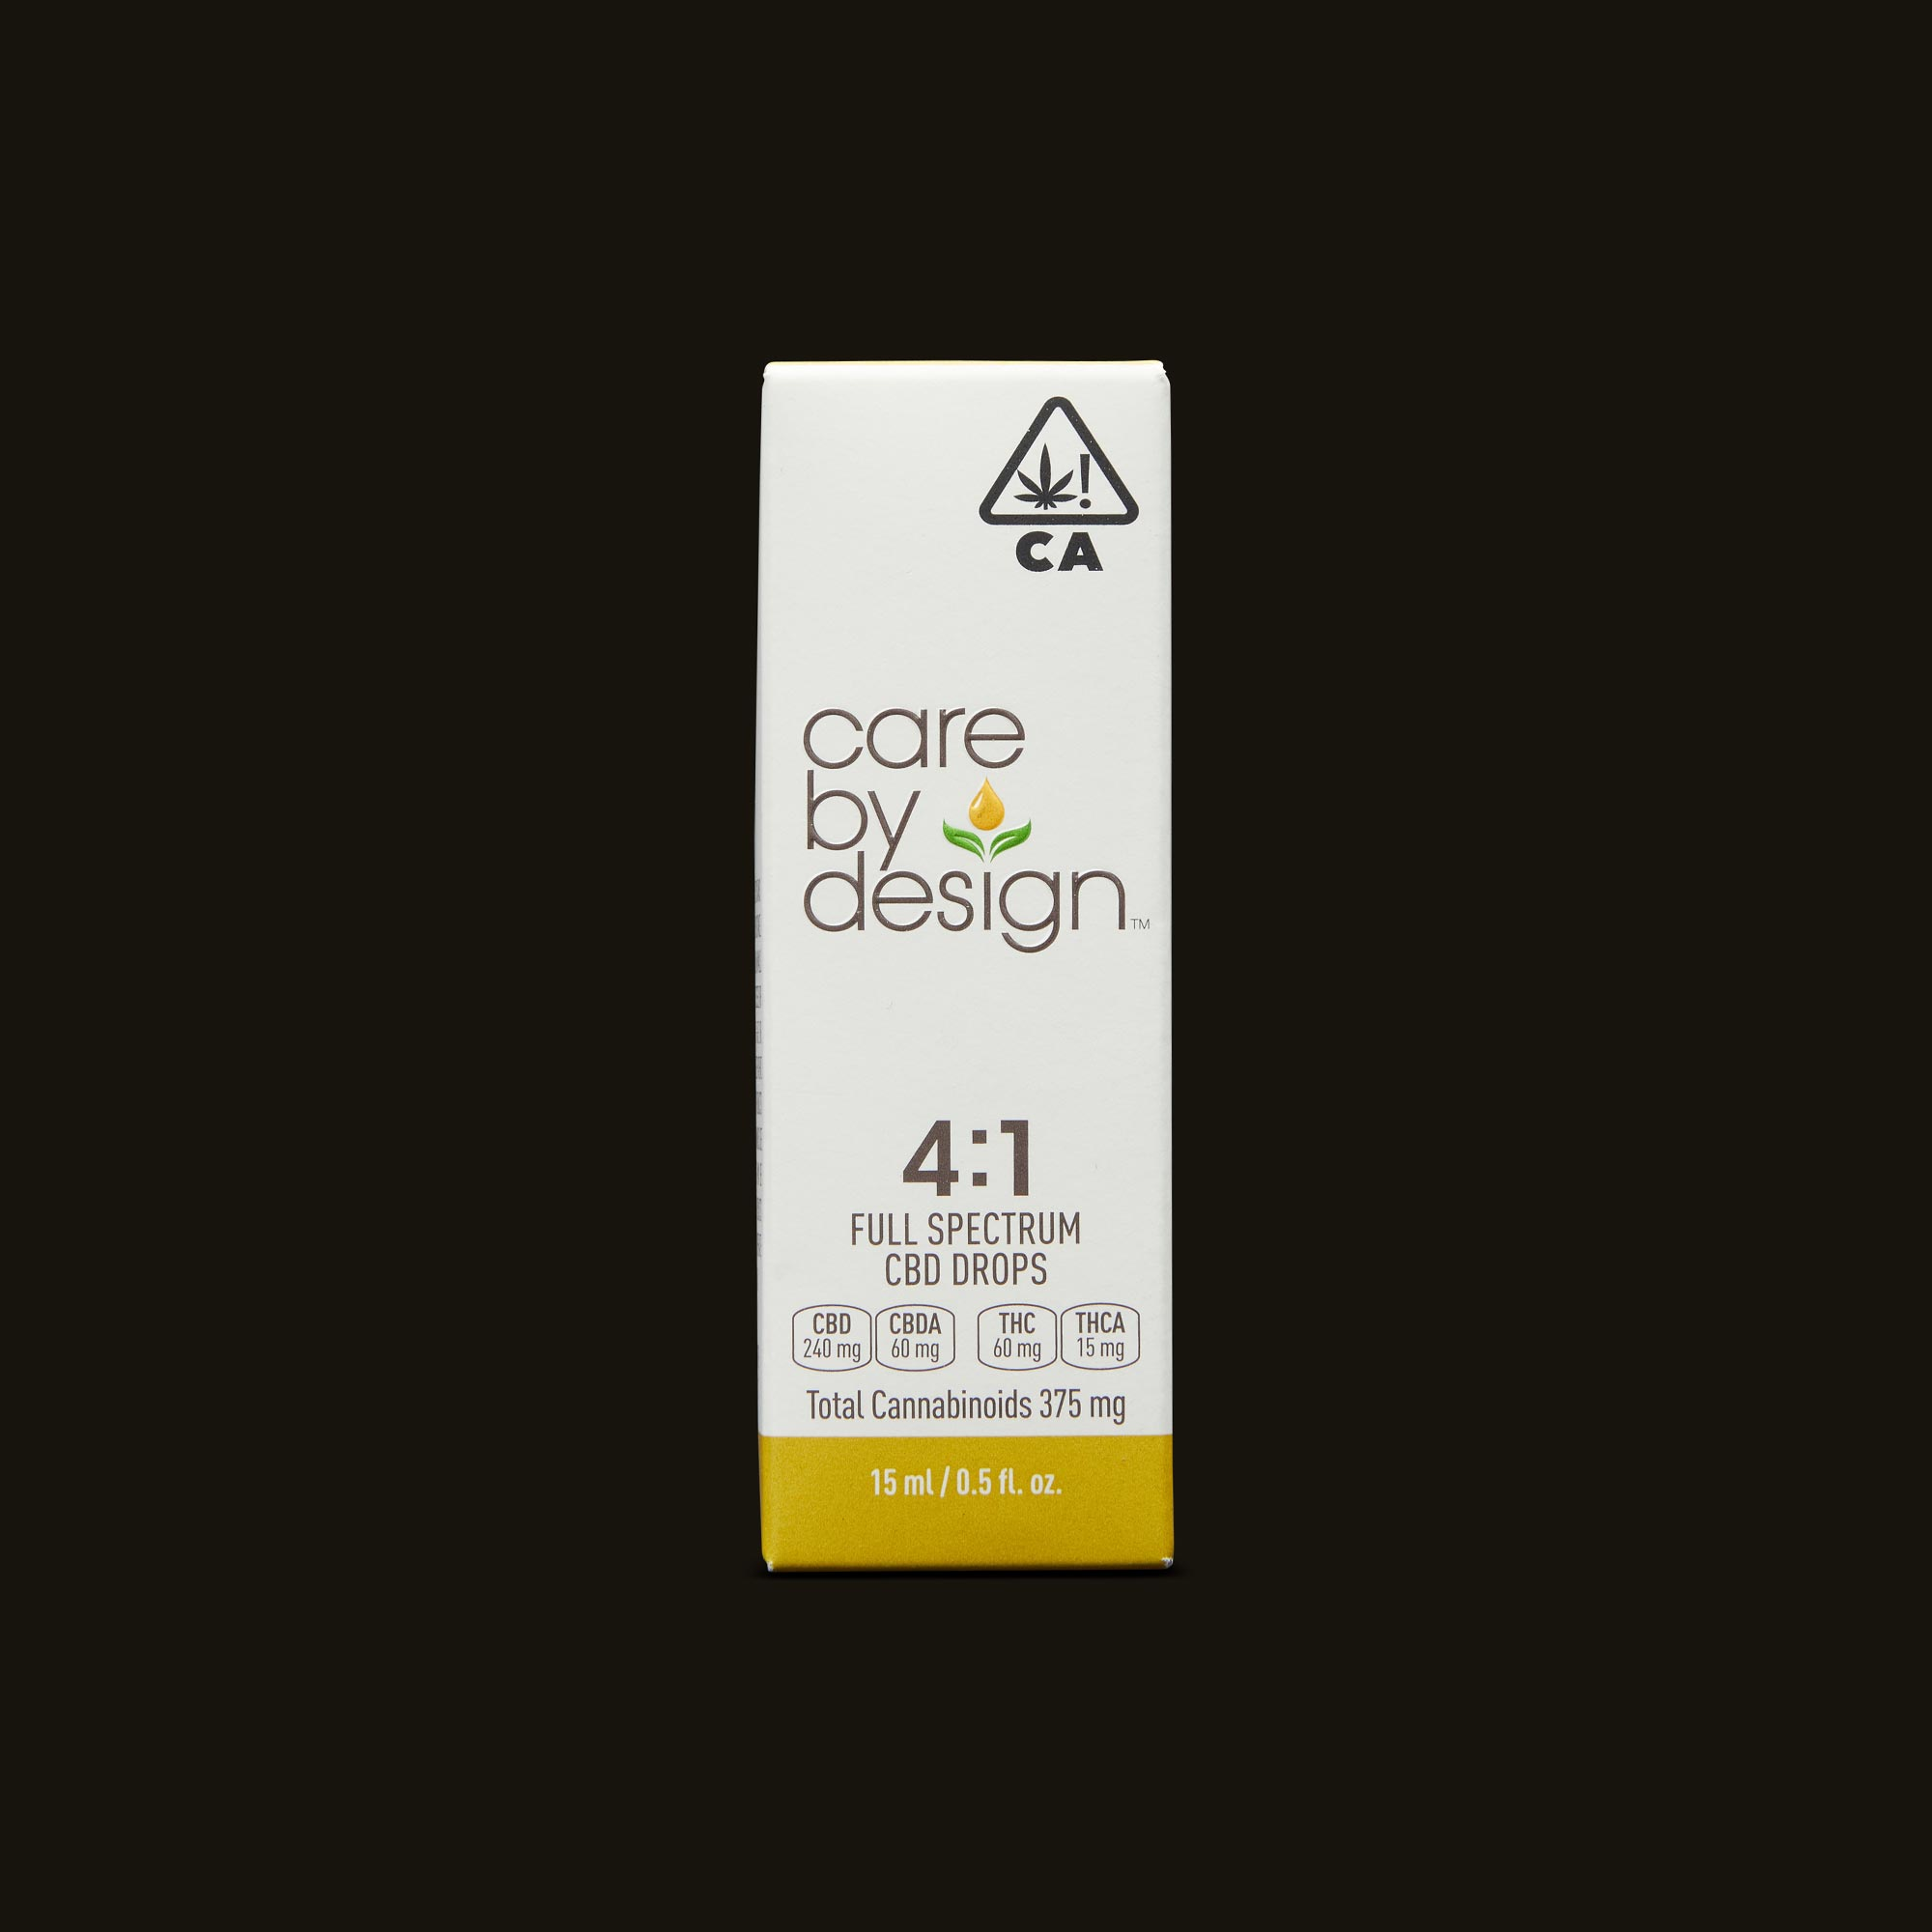 Care By Design 4:1 Full Spectrum CBD Drops - 0.5oz Front Packaging